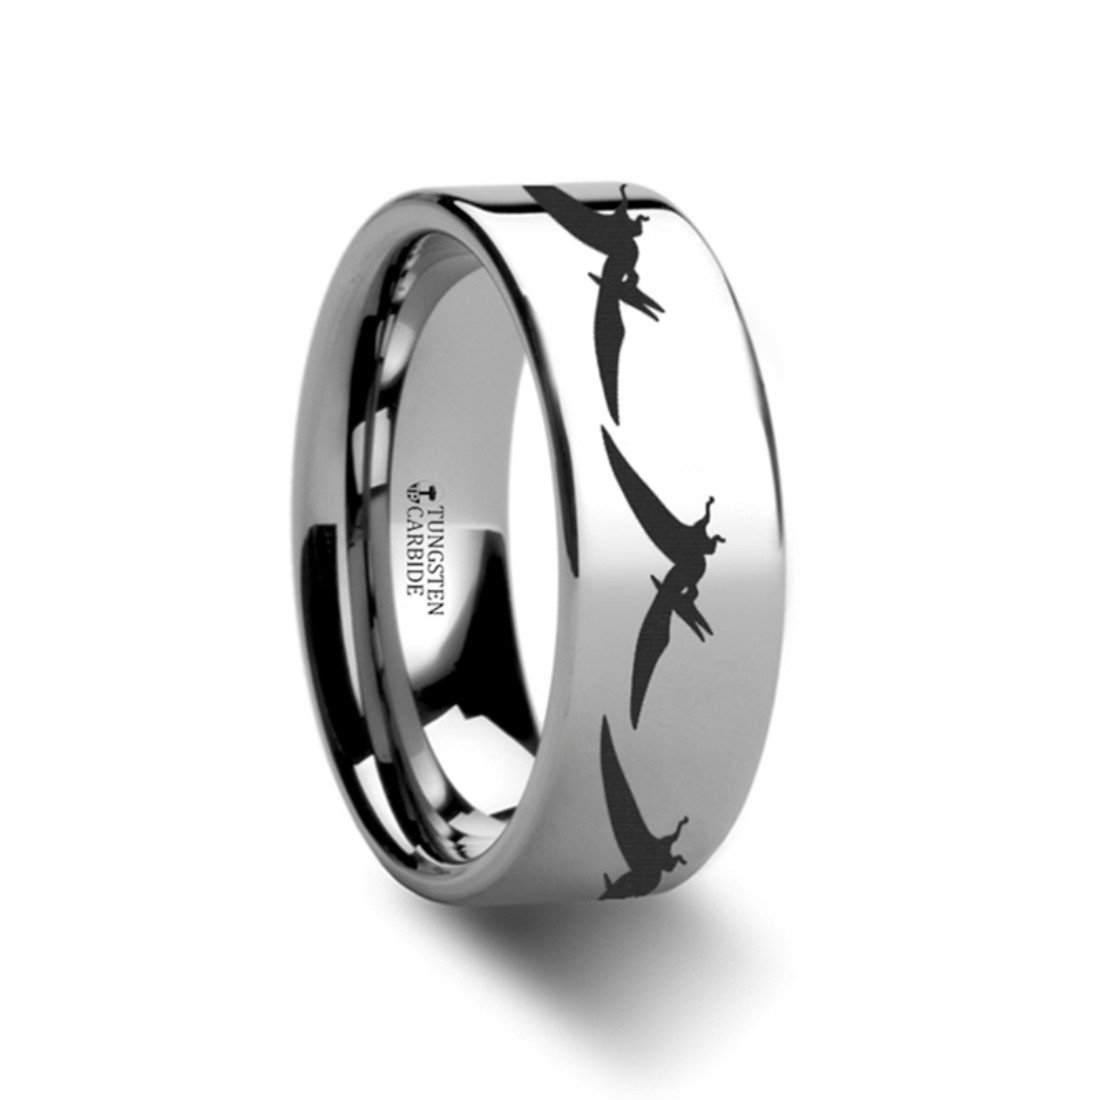 Thorsten Dinosaur Ring Teradactyl Prehistoric Paleo Flat Polished Tungsten Ring 4mm Wide Wedding Band from Roy Rose Jewelry